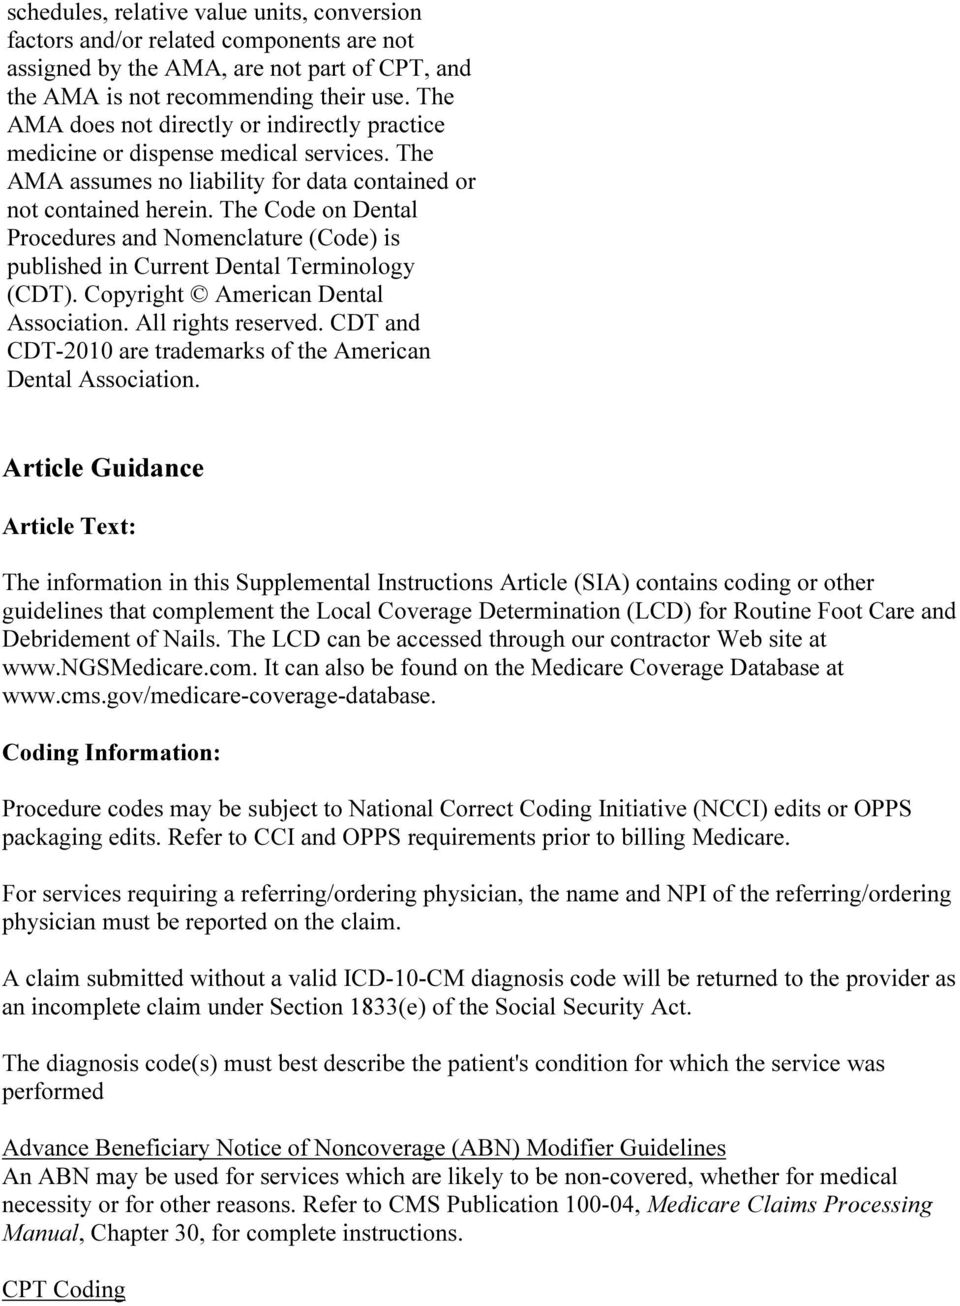 medicare claims processing manual chapter 10